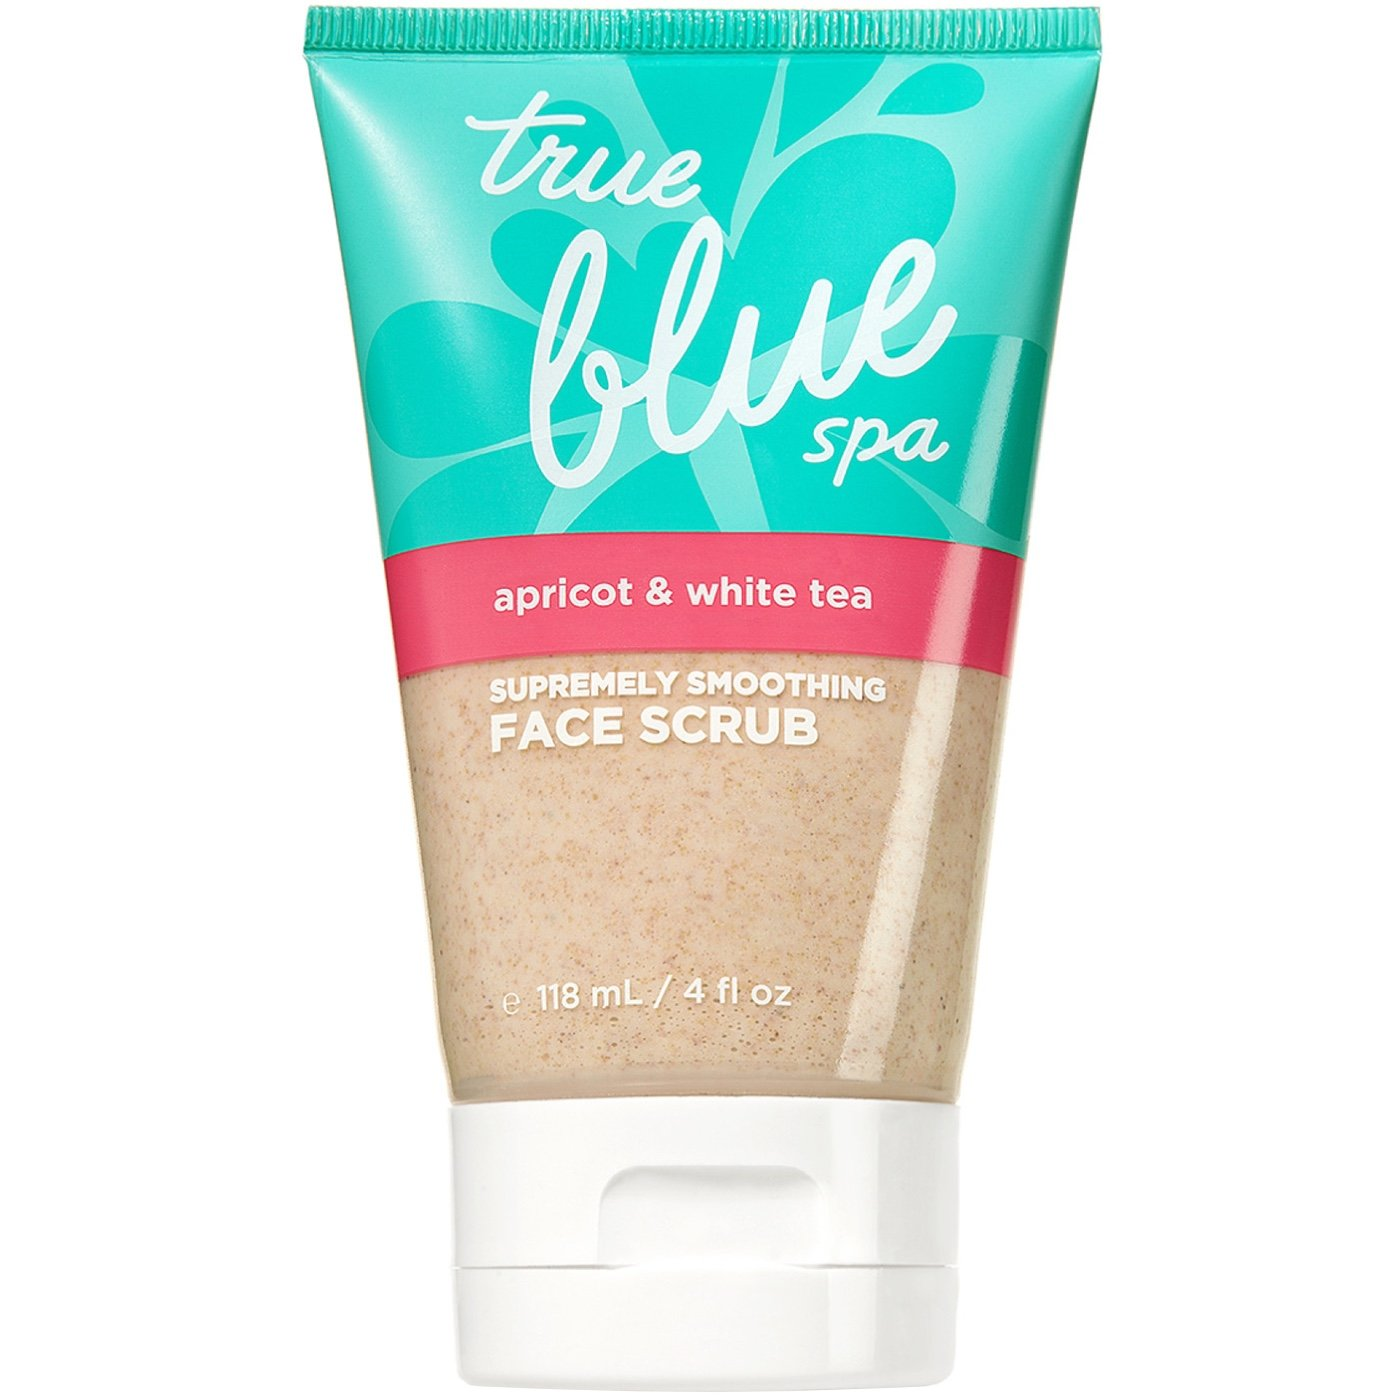 Bath & Body Works - Bath & Body Works True Blue Spa Apricot & White Tea Facial Scrub 4oz